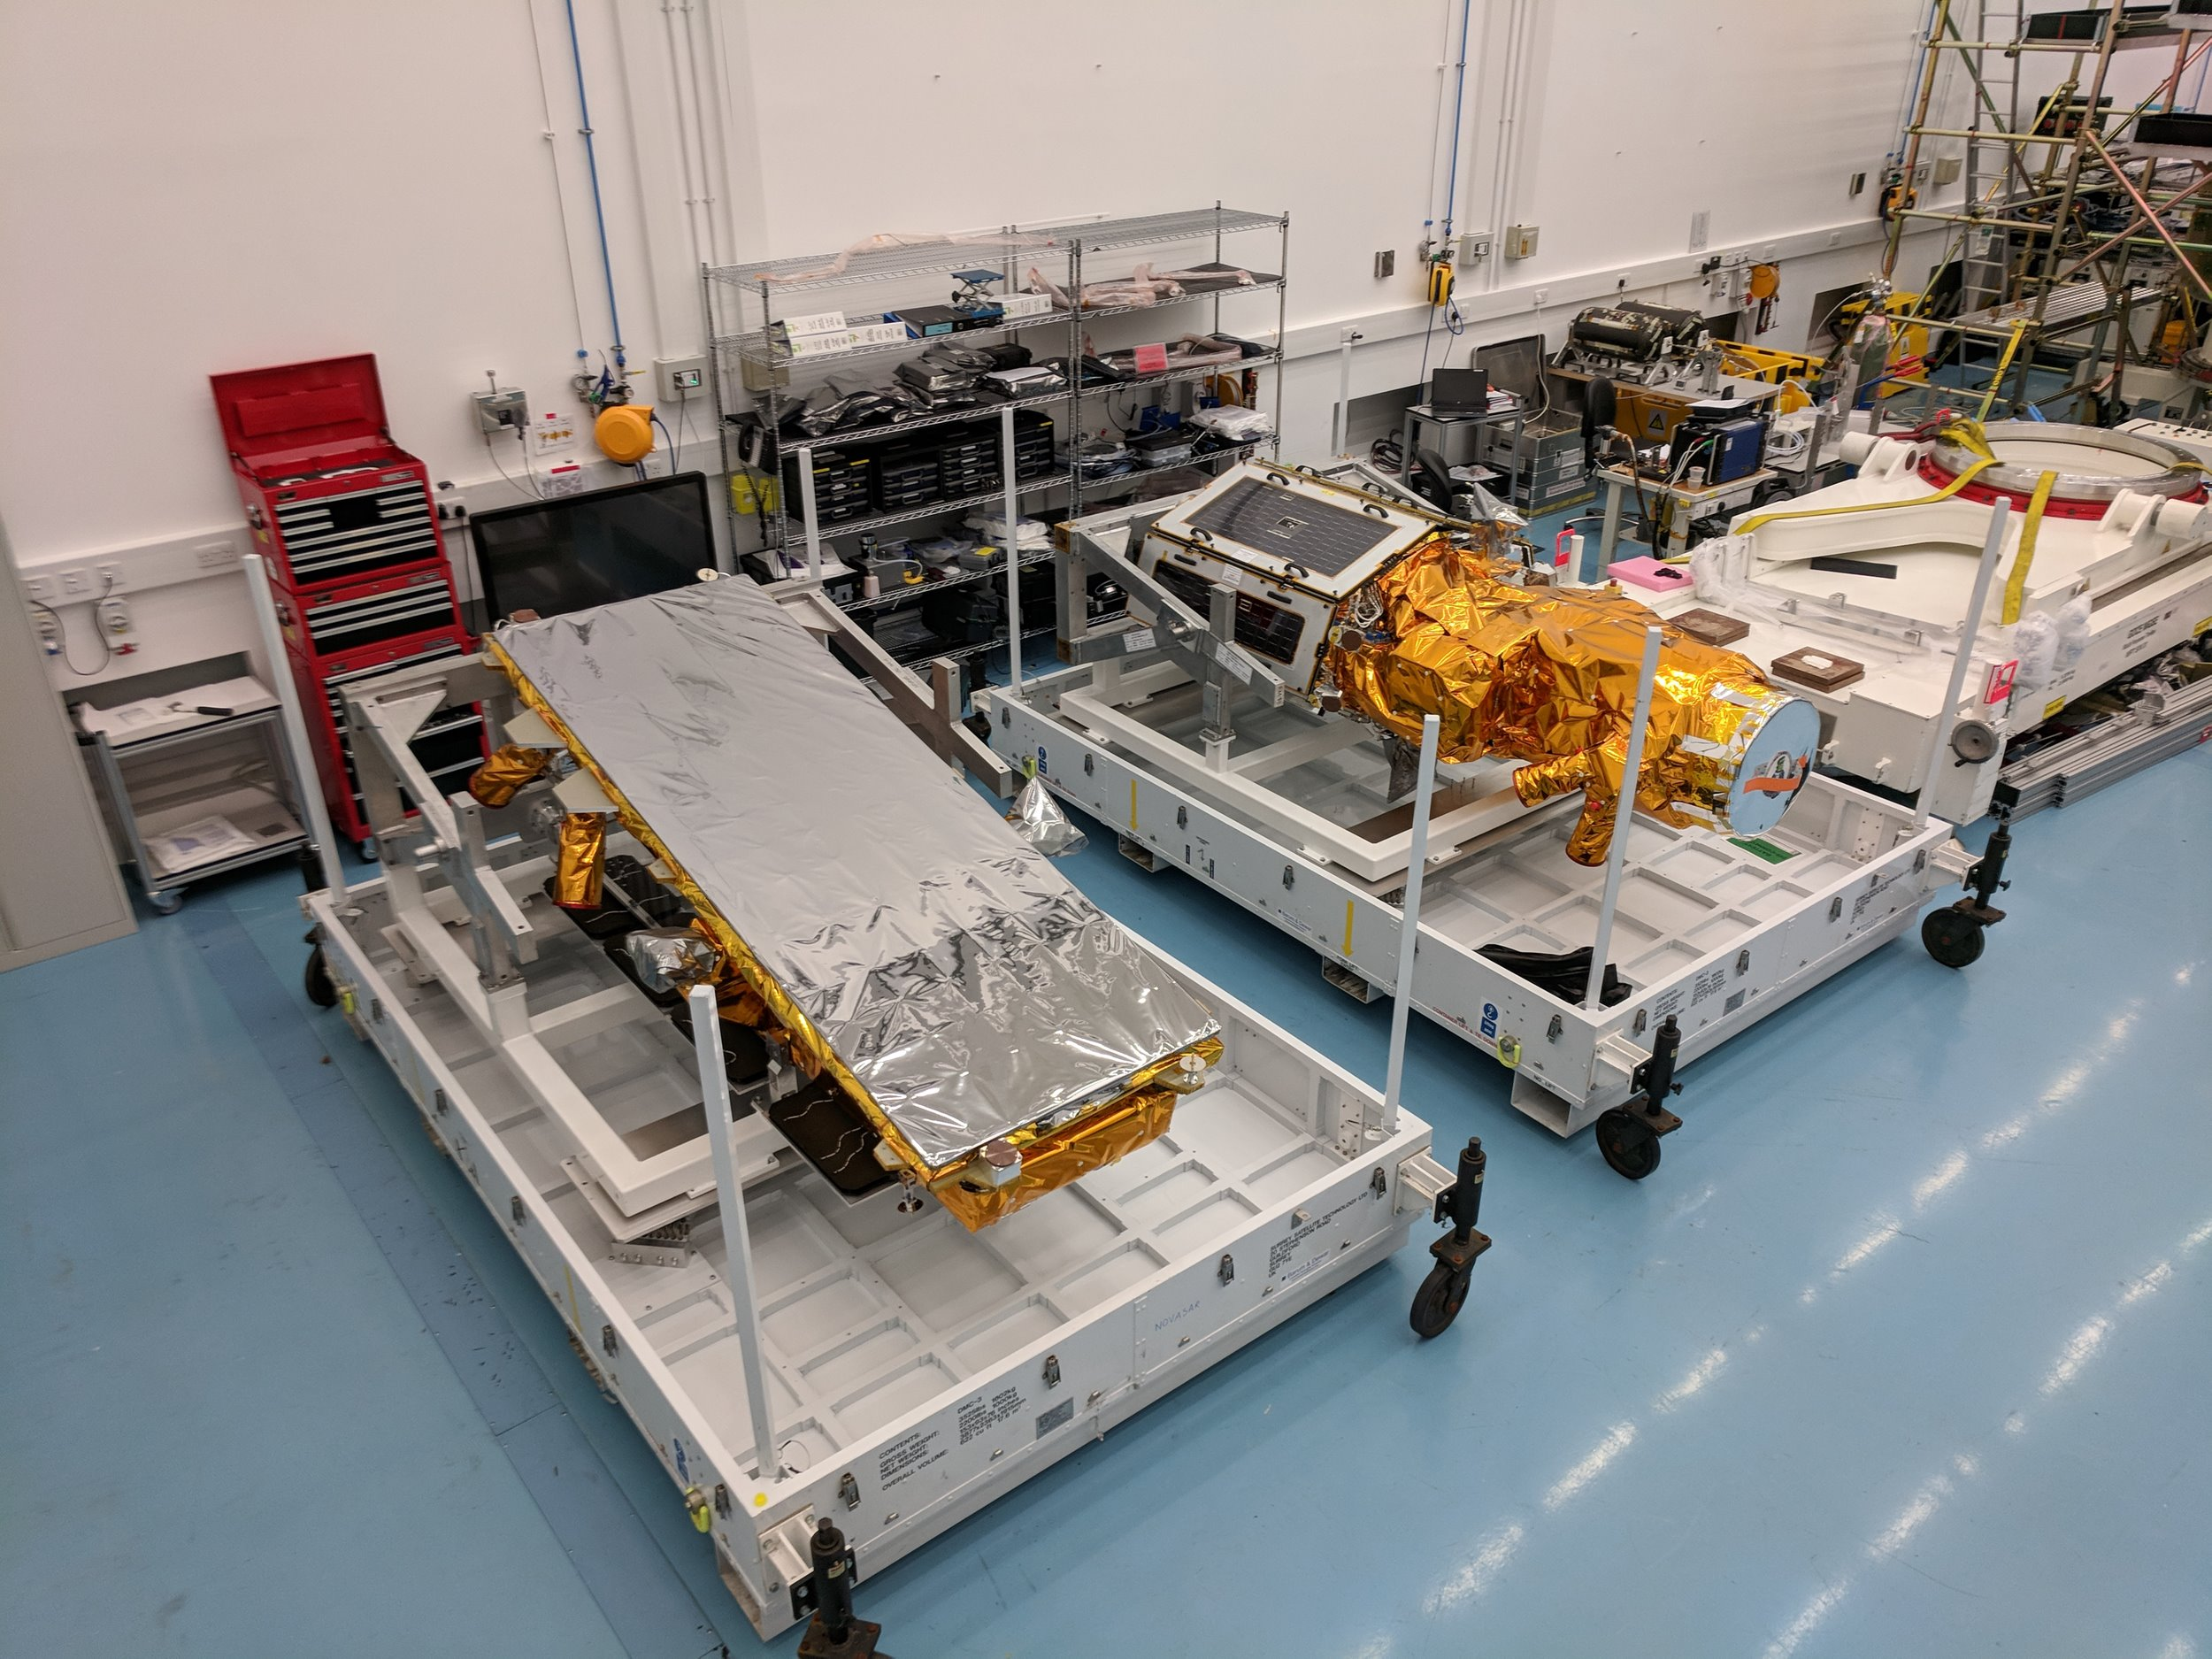 NovaSAR-1 and SSTL S1-4 in flight cases at SSTL, August 2018. Credit SSTL.